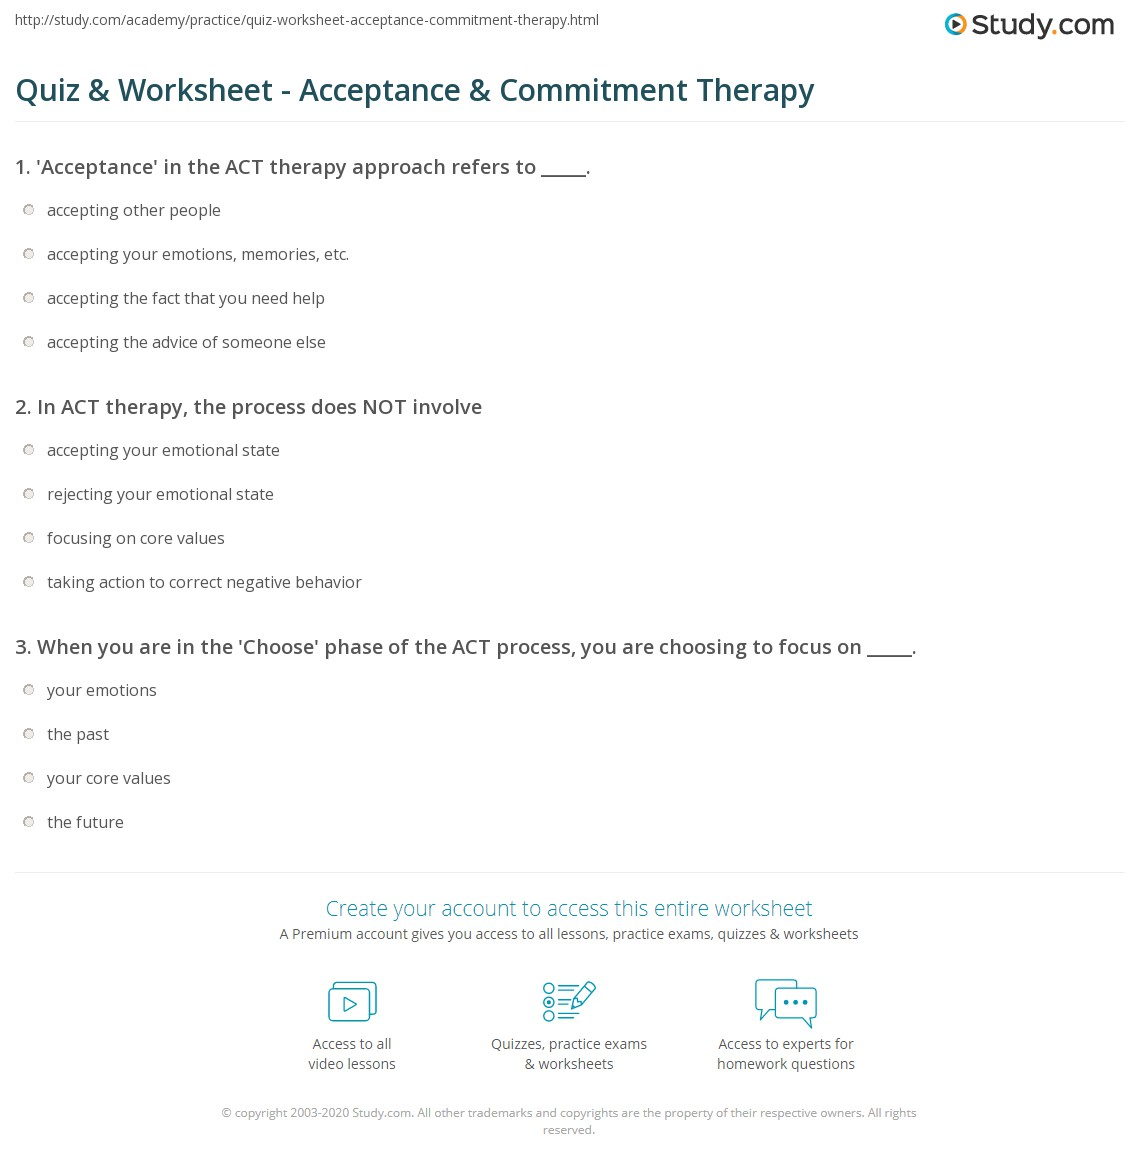 Quiz Worksheet Acceptance Commitment Therapy Study Com